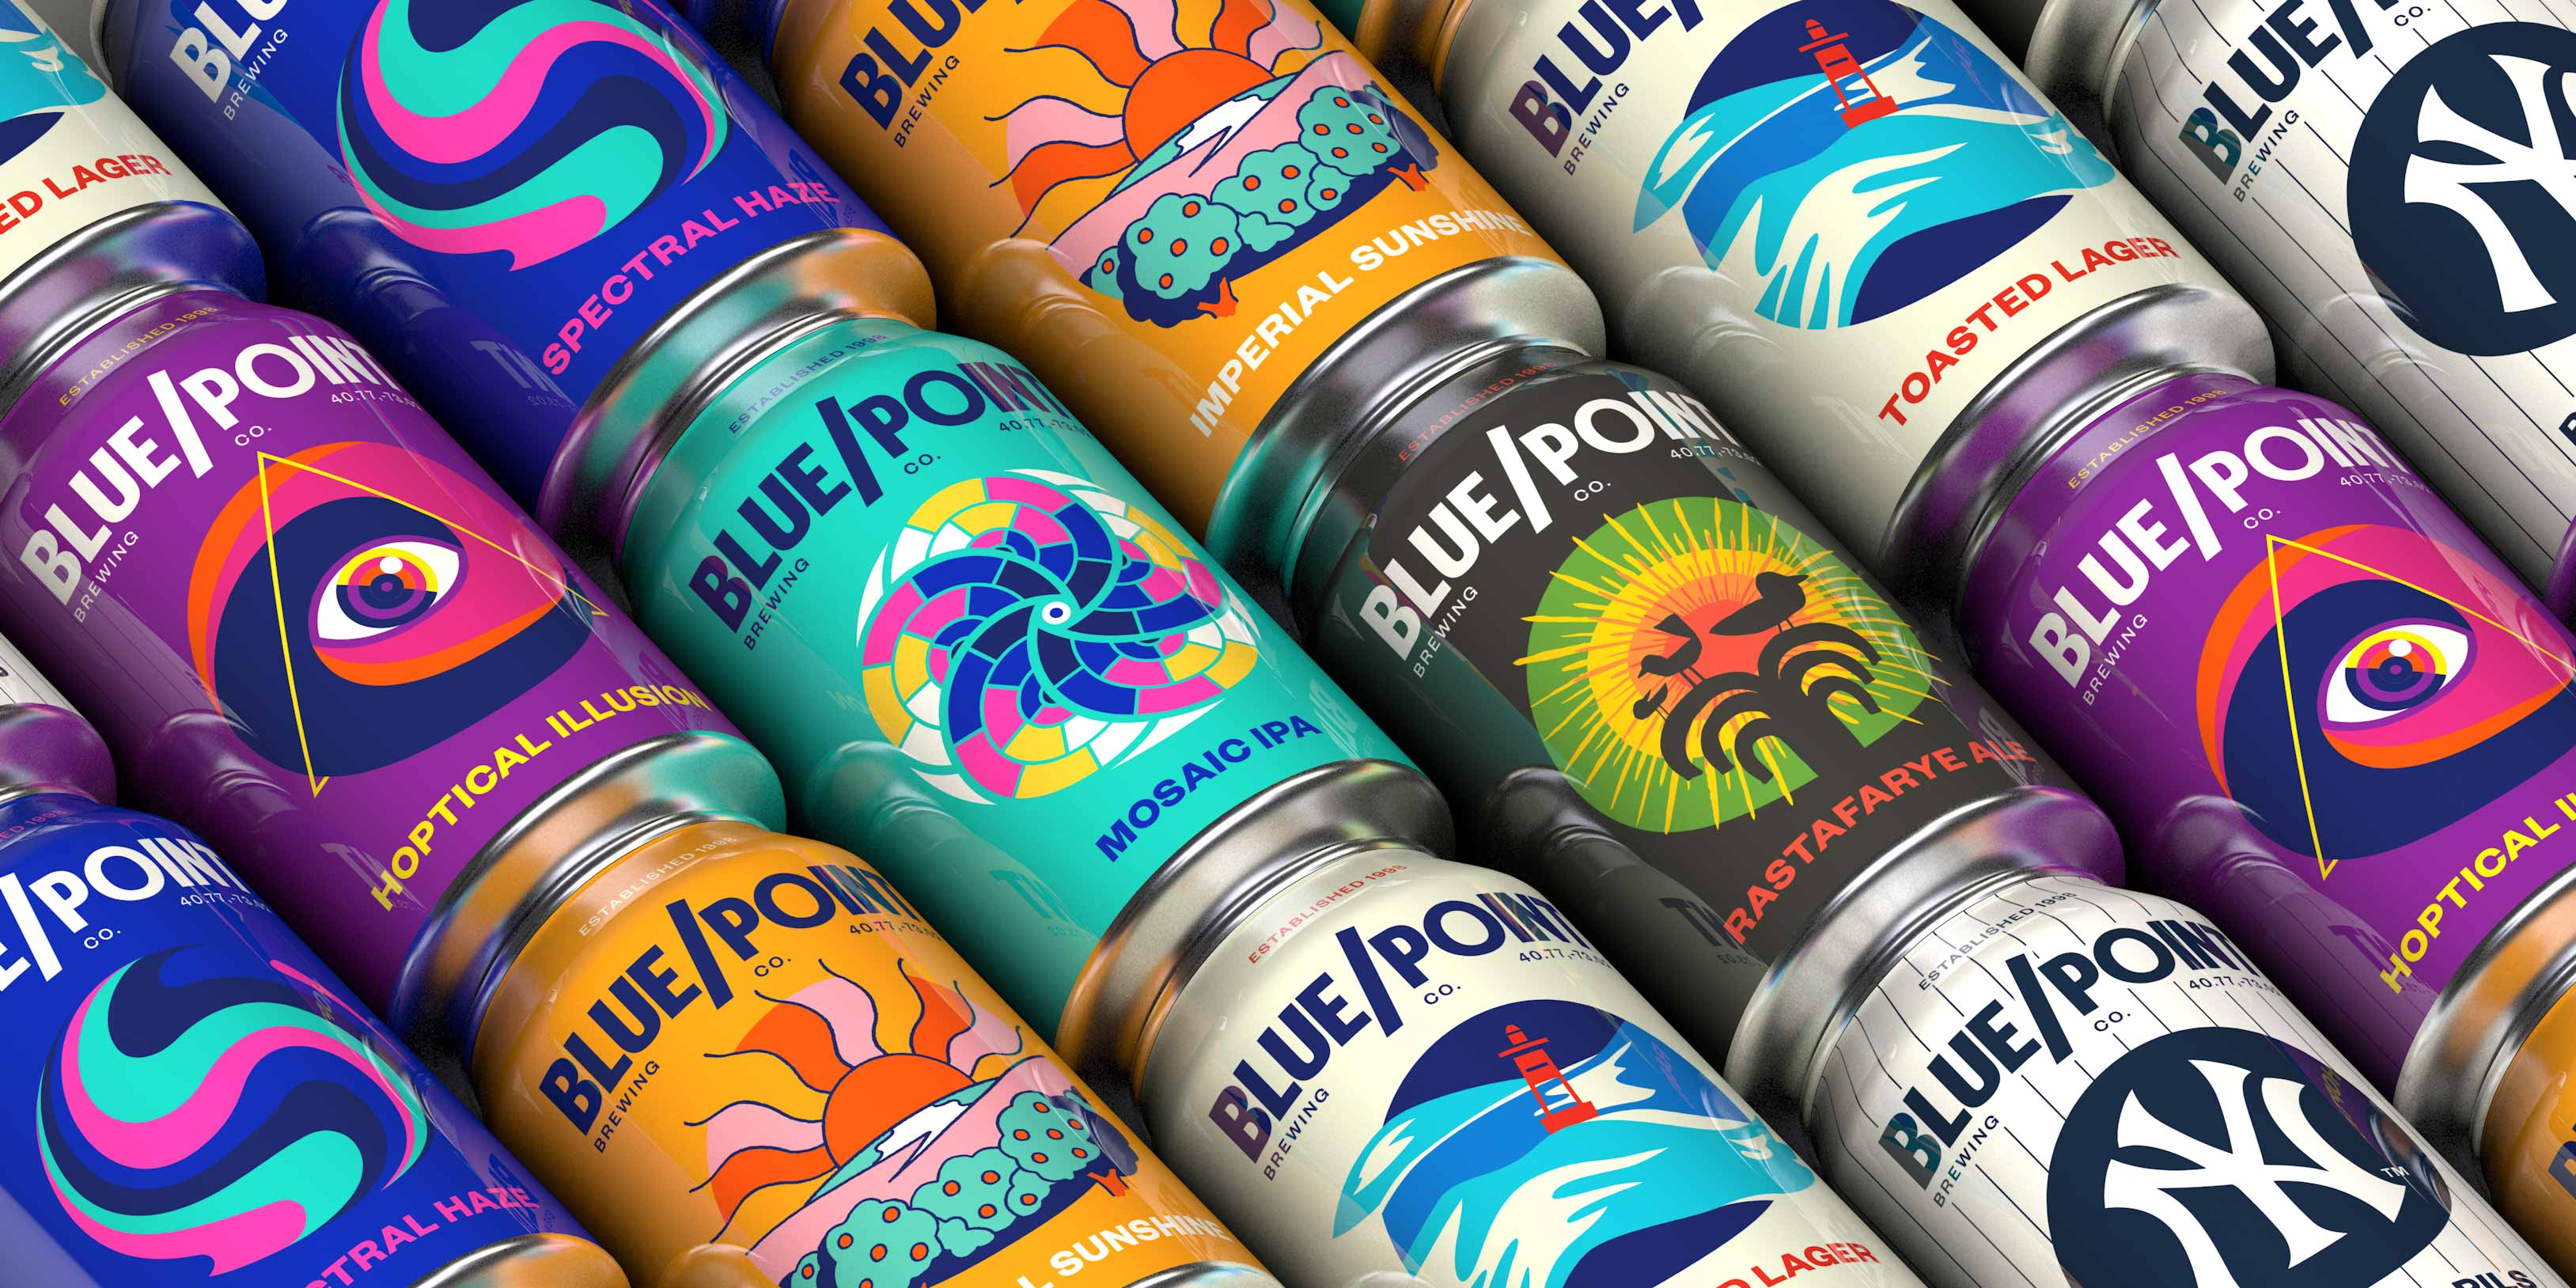 New VBI for Blue Point Brewing Co. by Bardo Industries